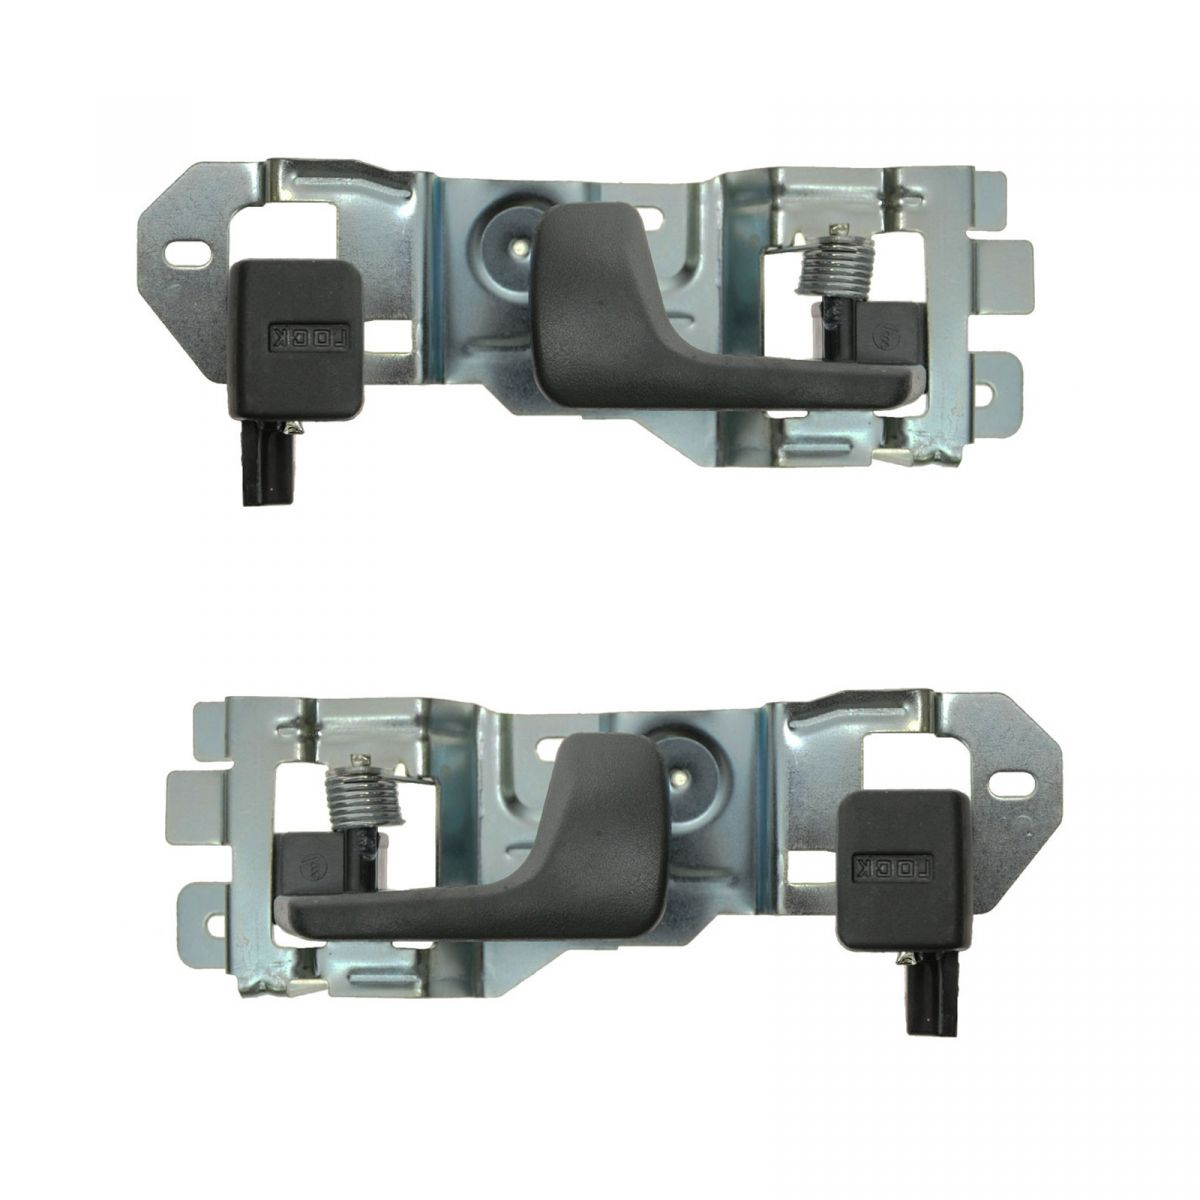 New Rear Outer Driver /& Passenger Side Door Handle Pair For 96-00 Honda Civic